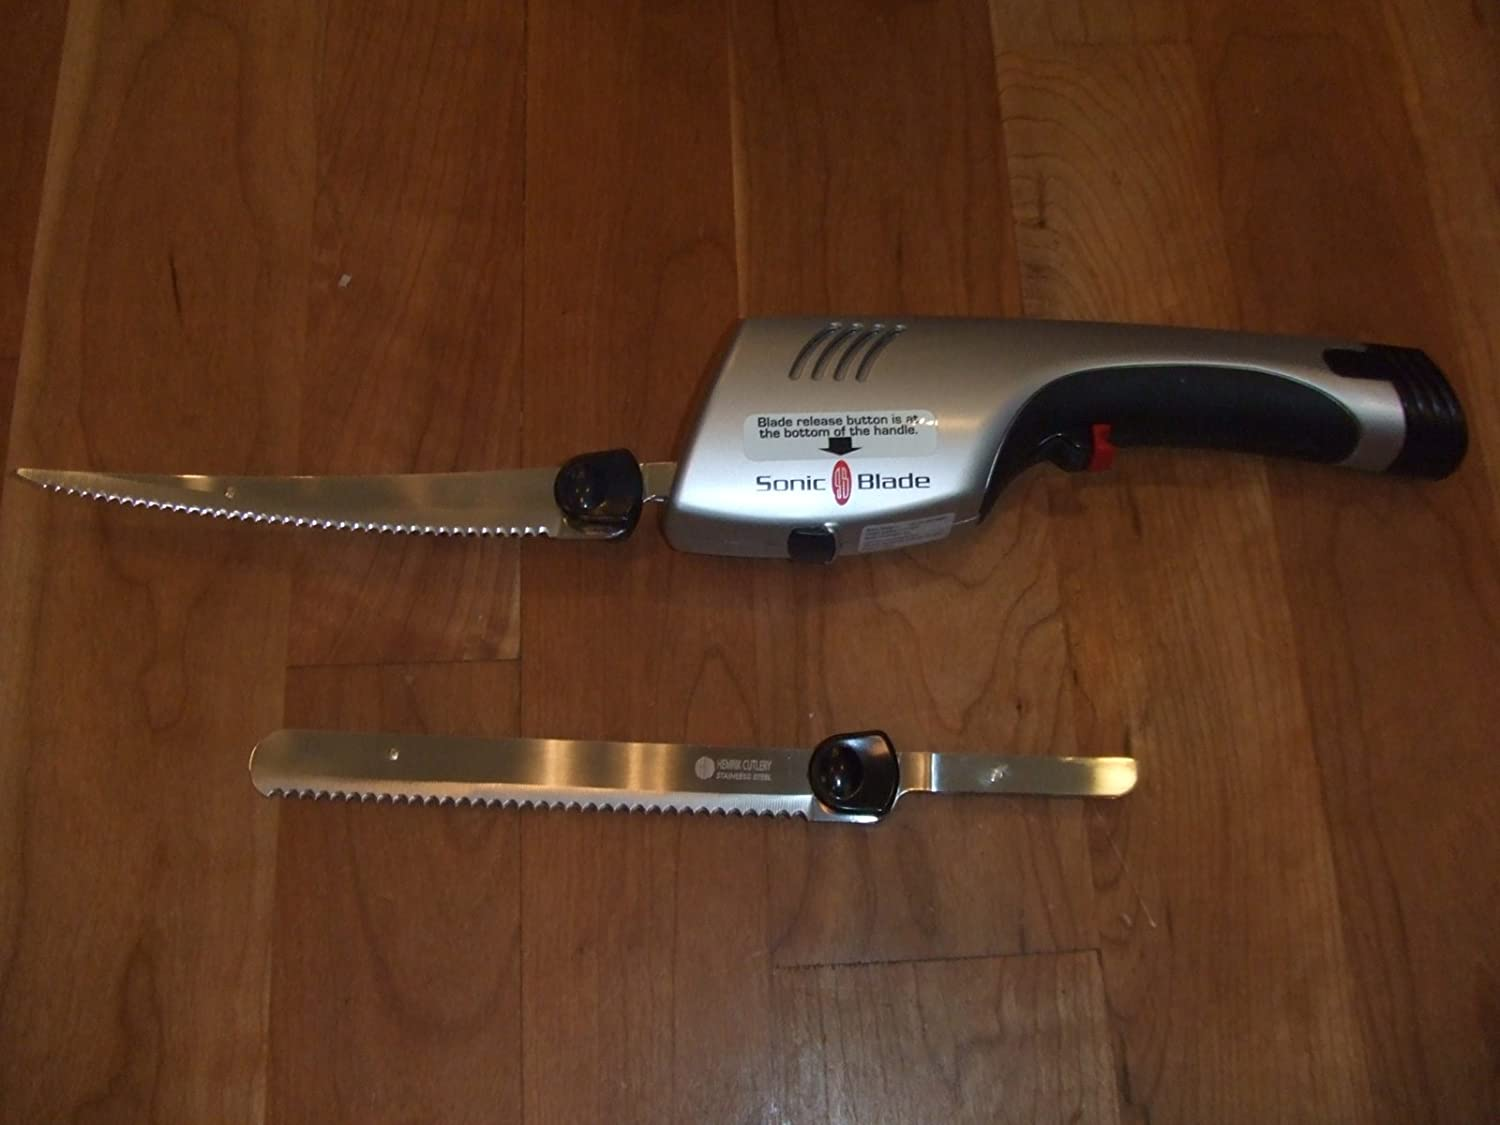 Cordless sonic blade with extra blade on the table